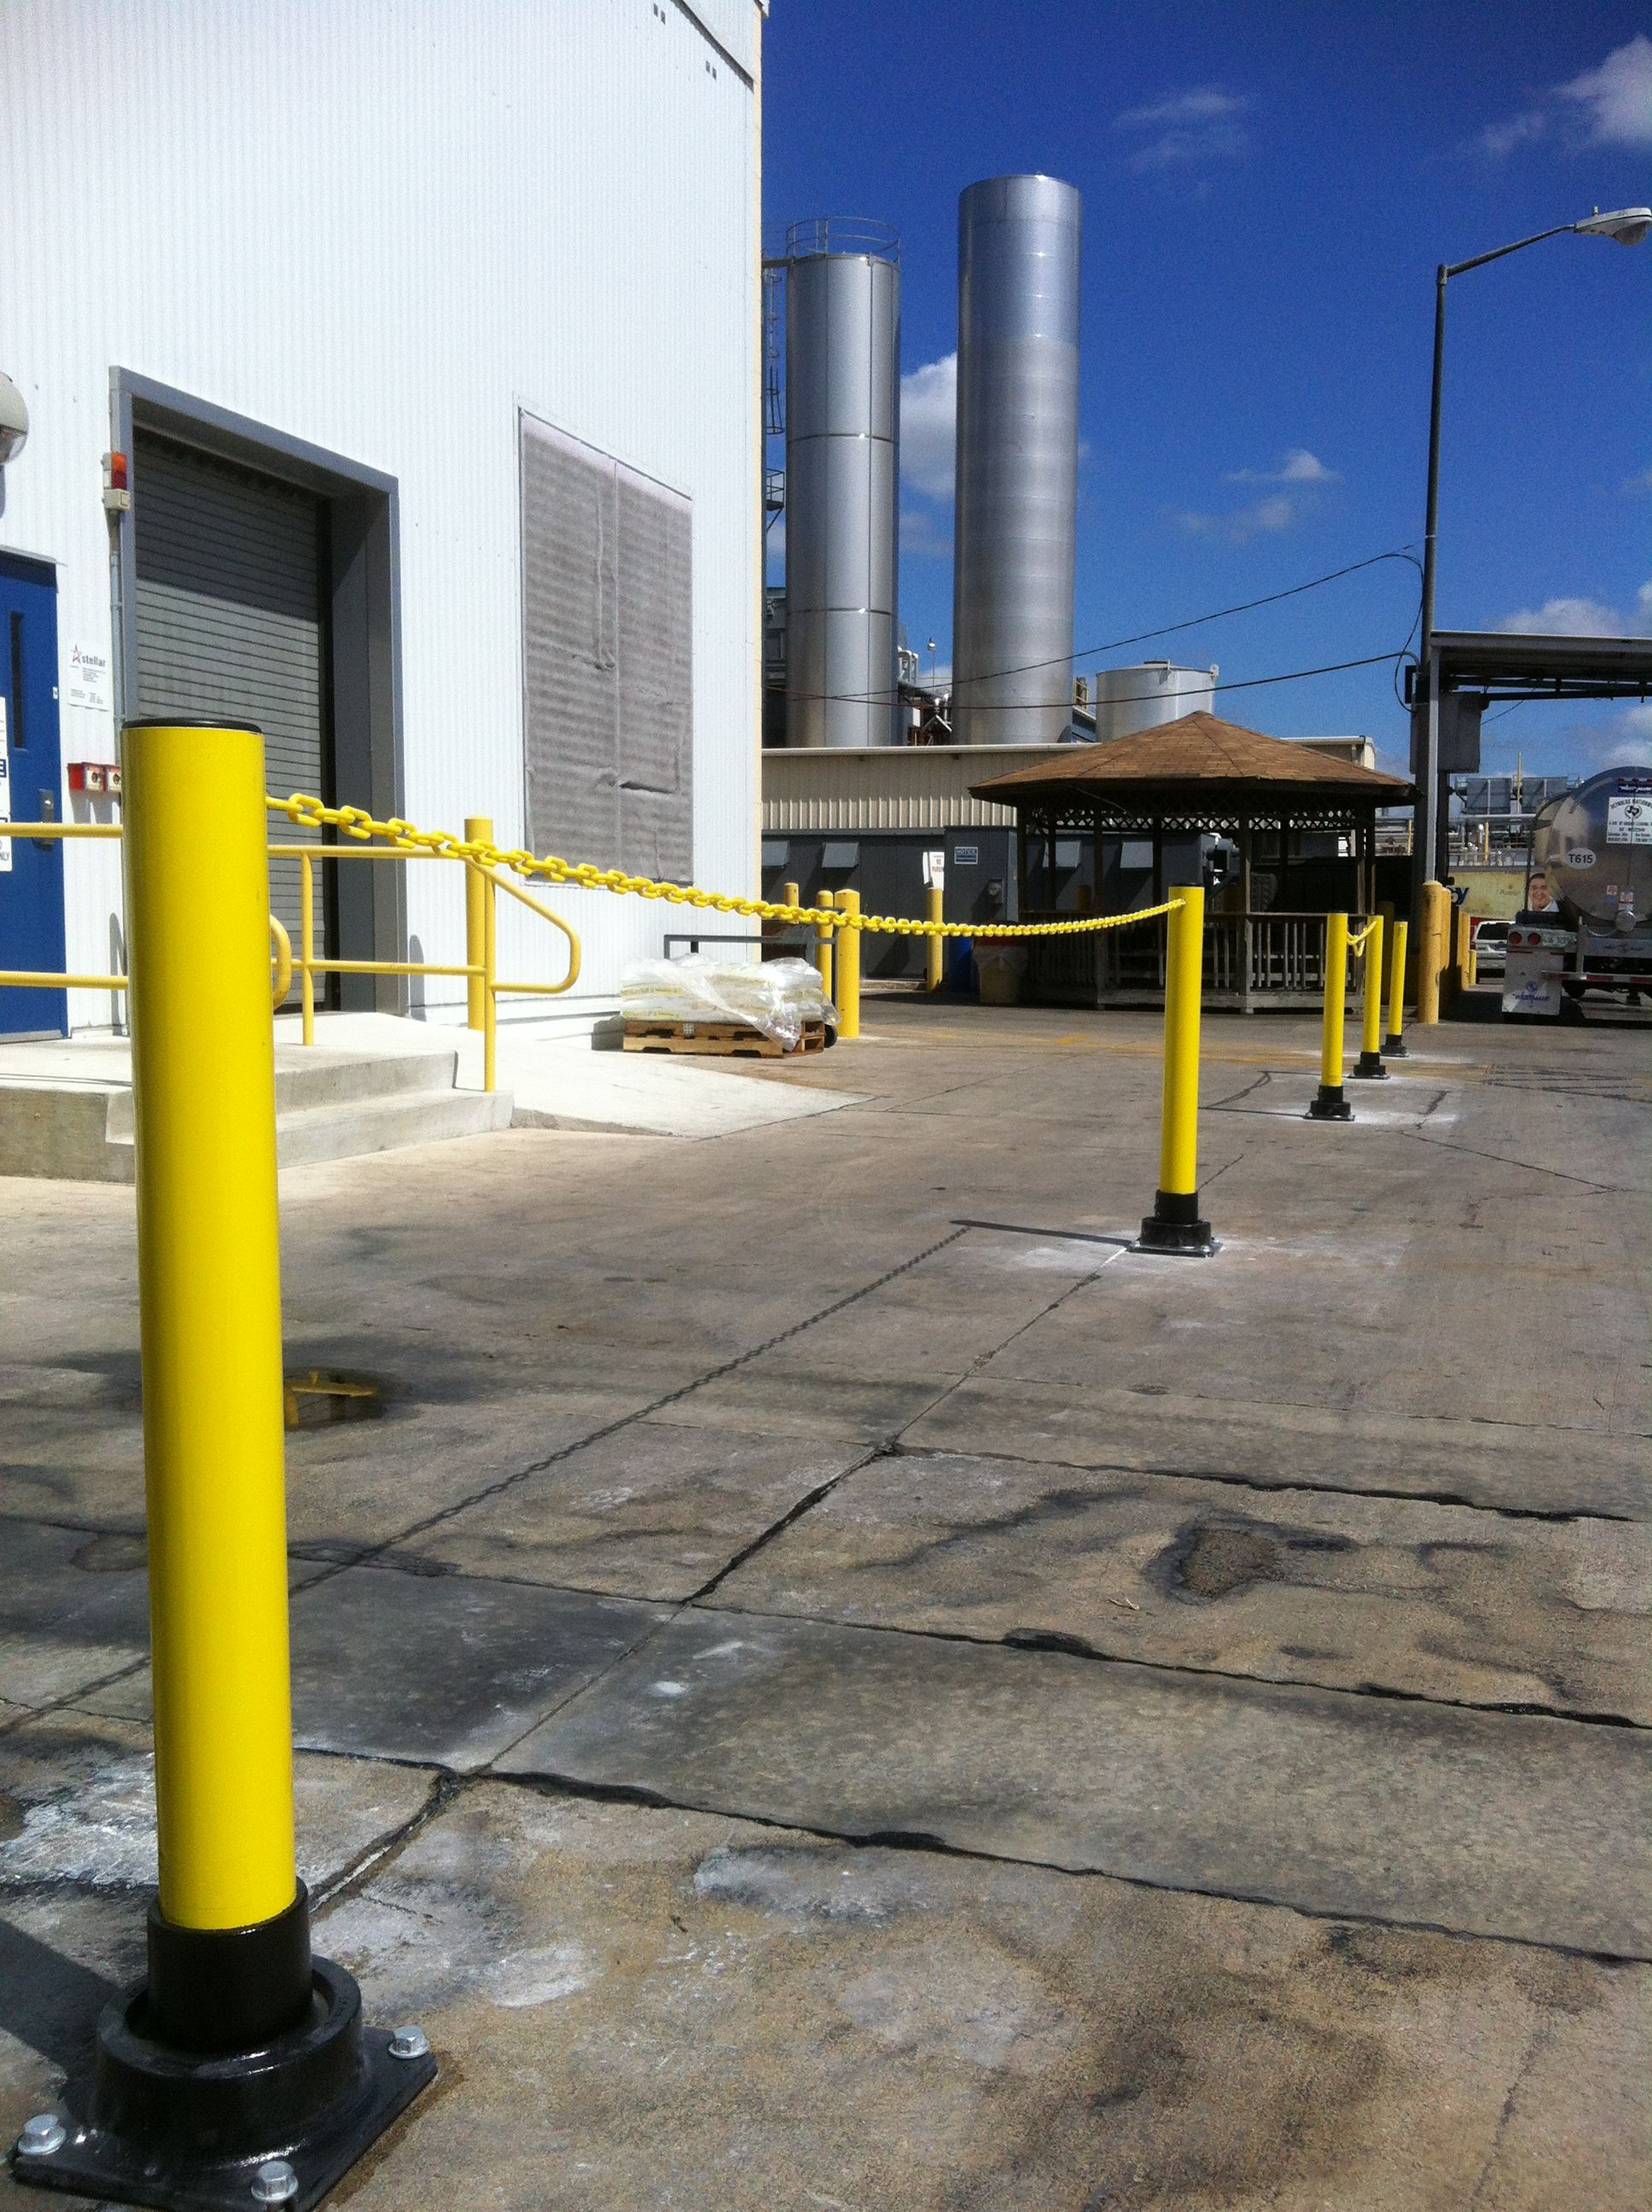 medium resolution of heb warehouse in san antonio tx became a recent fan of slowstop bollards this installation shows chains connecting the bollards together to create a